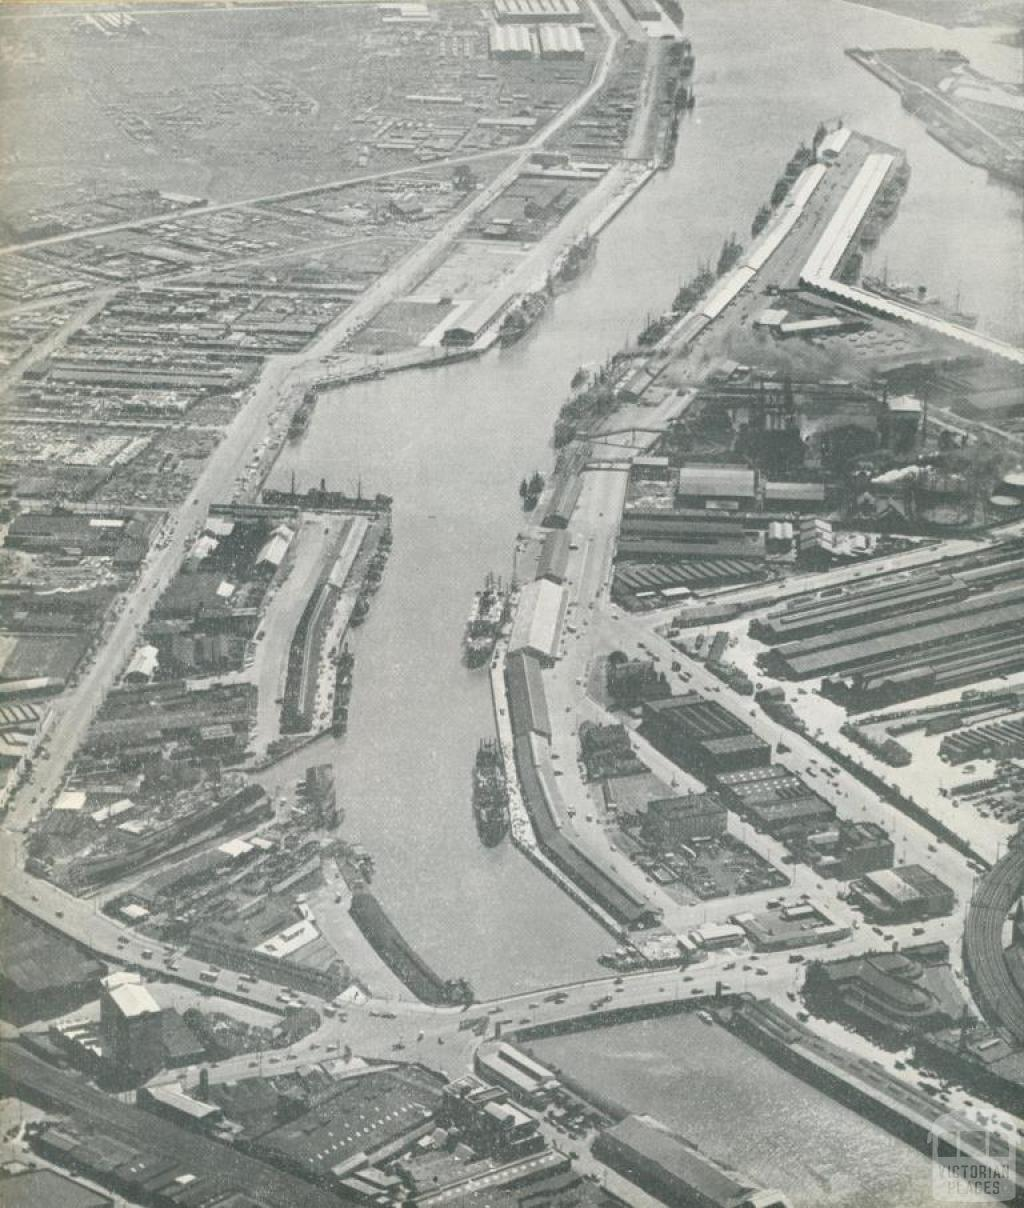 River Yarra, Port of Melbourne, 1947